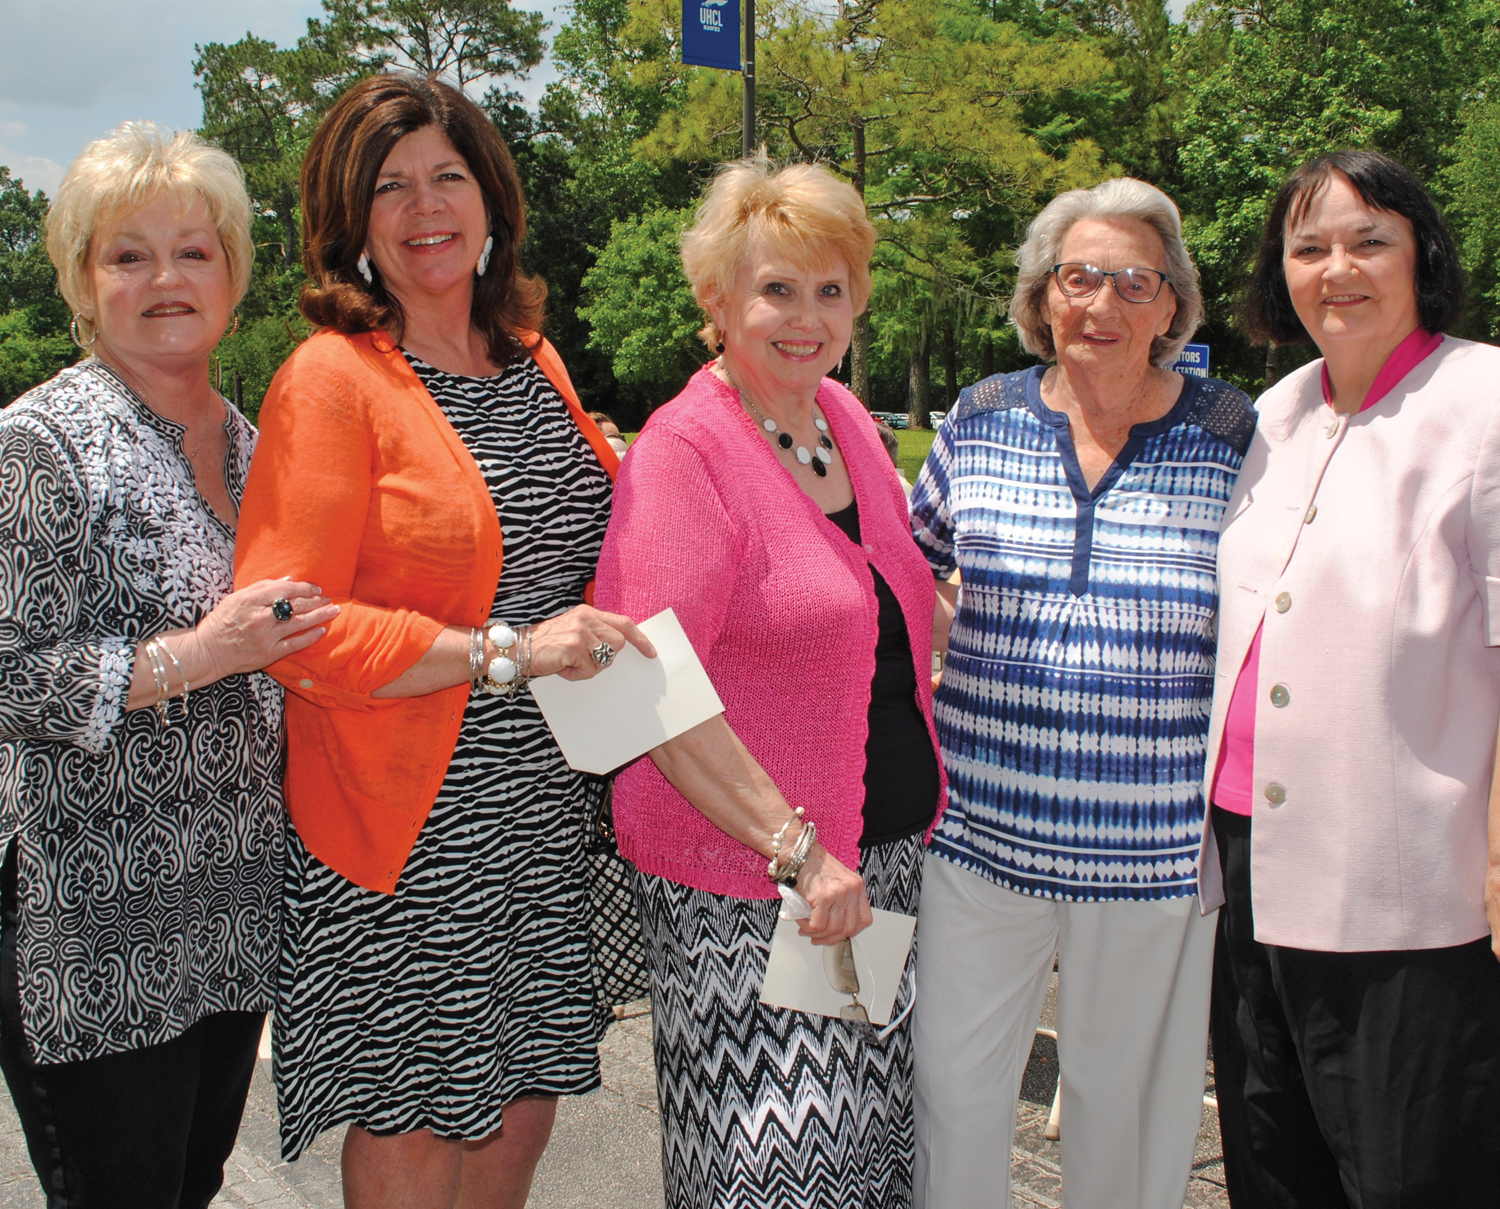 Many long-time friends of the Wilsons were in the crowd for the dedication of Pat and Wendell Wilson Park May 3 including, from left, Betsy Bush, Kippy Caraway, Martha Ferebee, Lois Mohrhusen and Pat Hargrove.